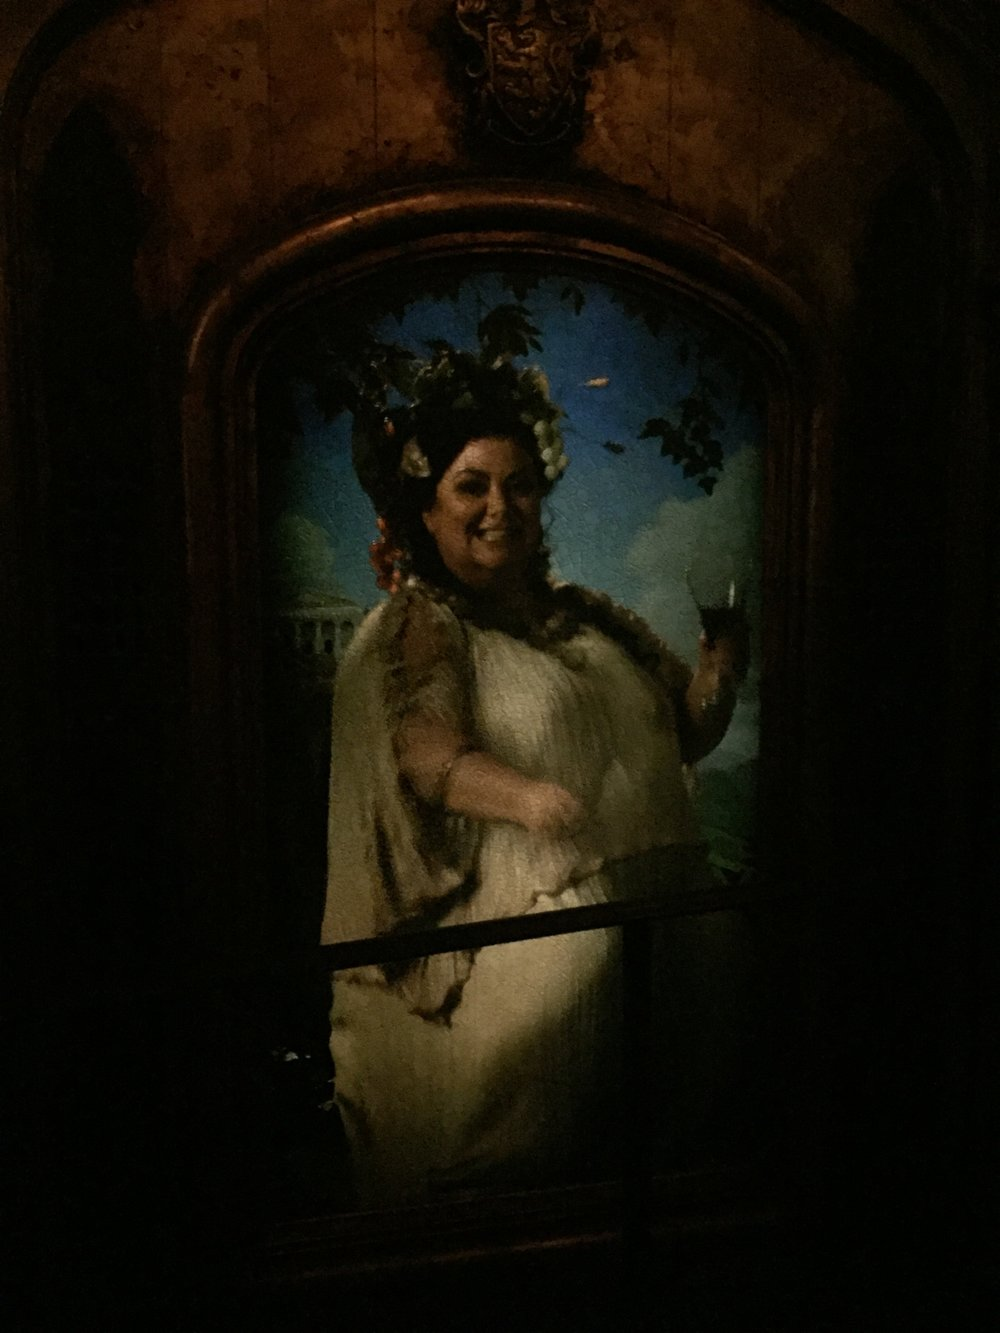 [image description: A portrait of The Fat Lady (JK Rowling's words, not mine) who guards the Gryffindor common room. She asks for passwords for entrance. It's a tall portrait of a woman in a white dress holding a glass of wine and with grapes in her hair. Her dress and the painting are Greek in style.]